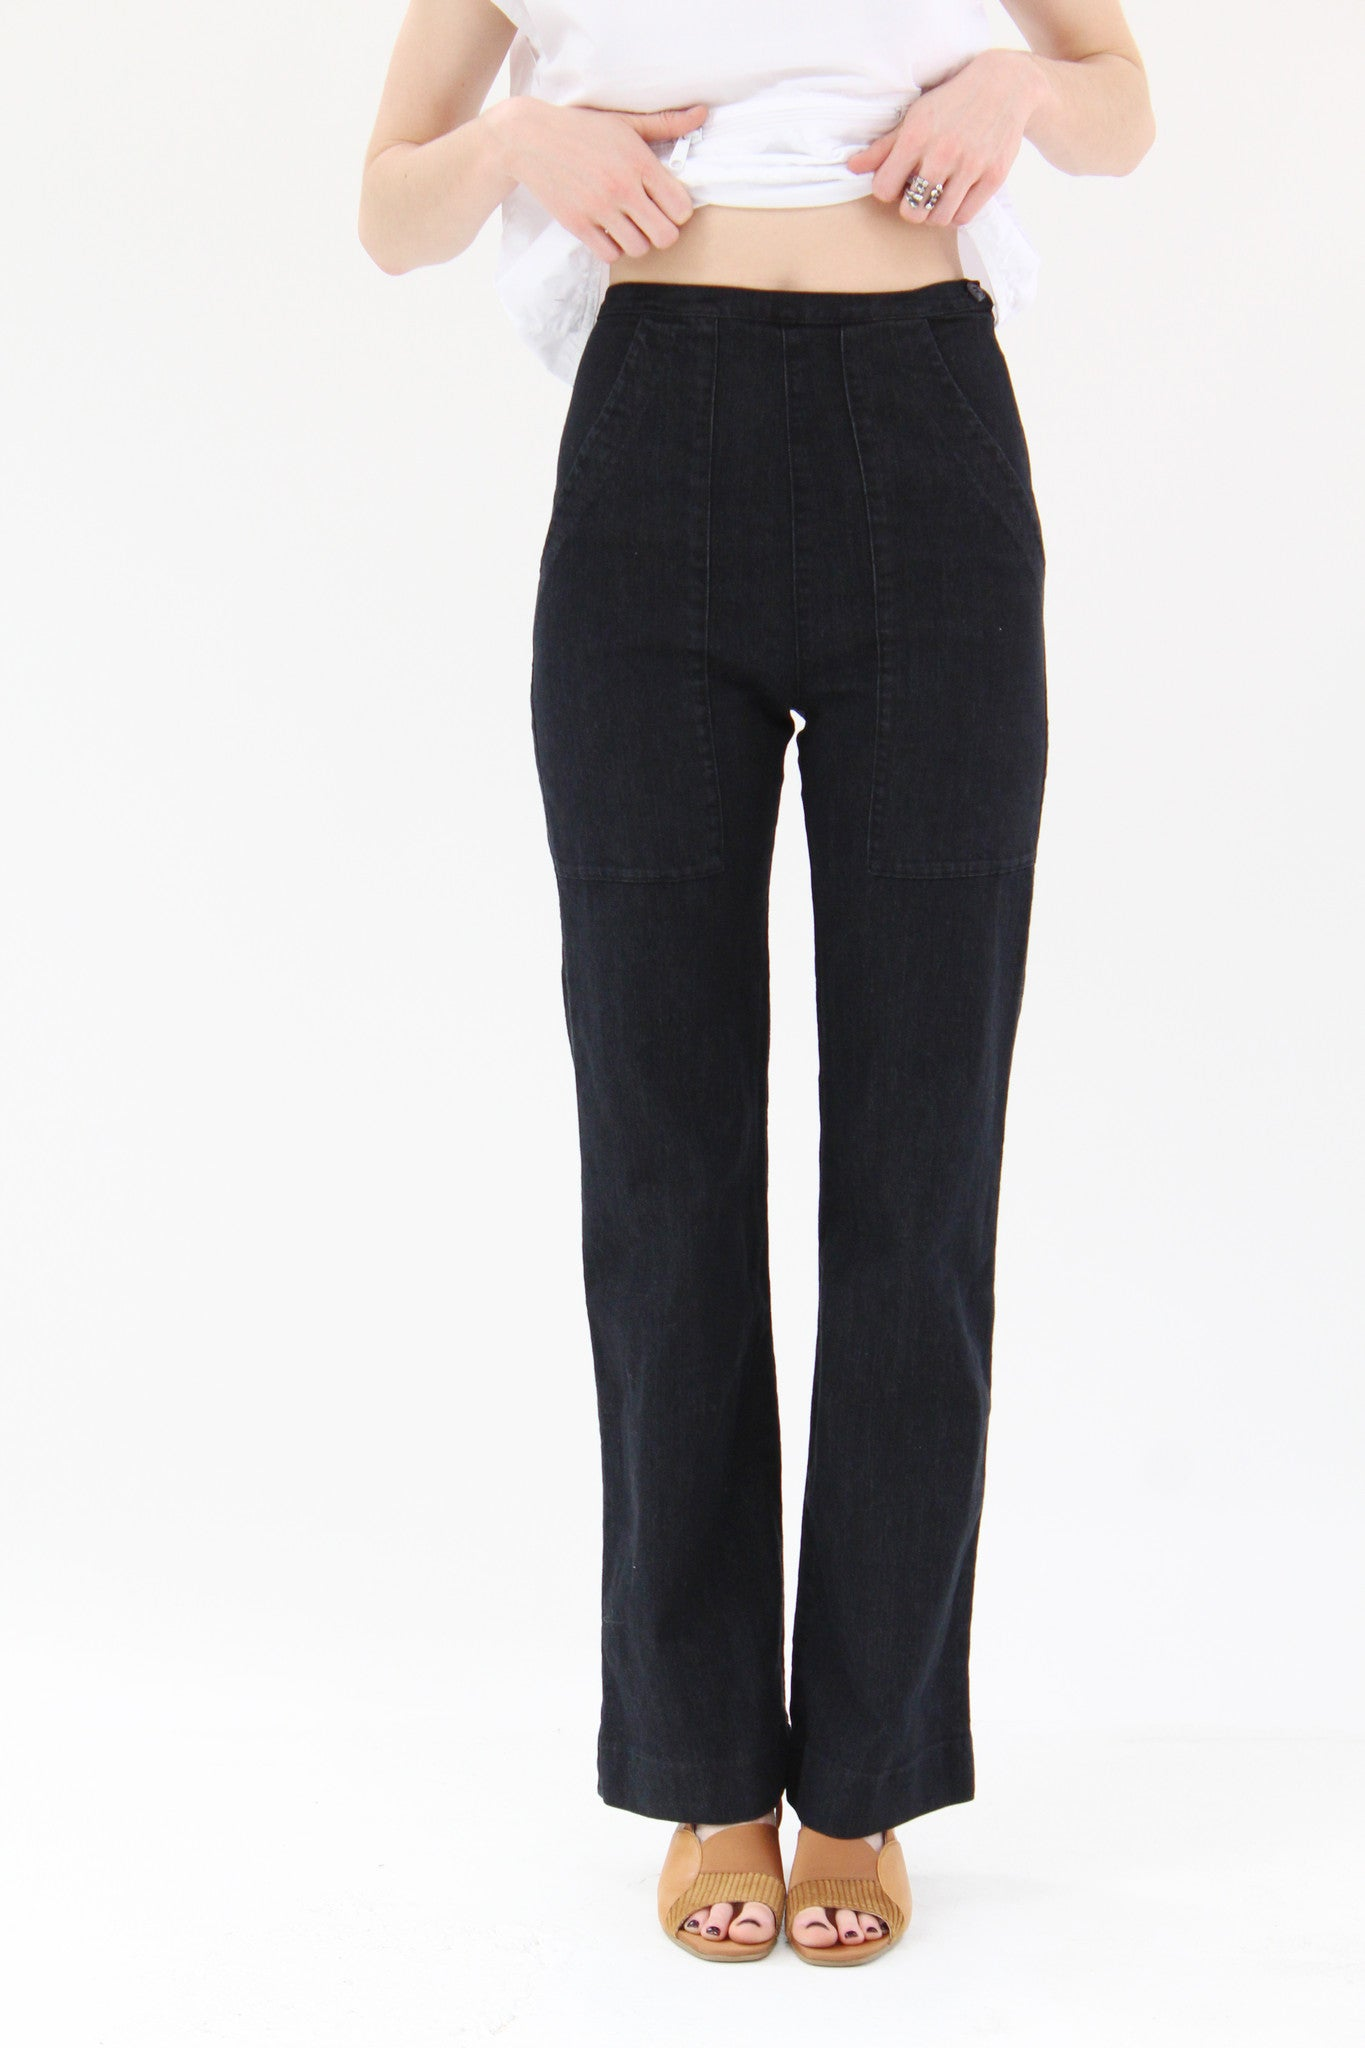 Prairie Underground Yr Arrow Pants Black / Beklina